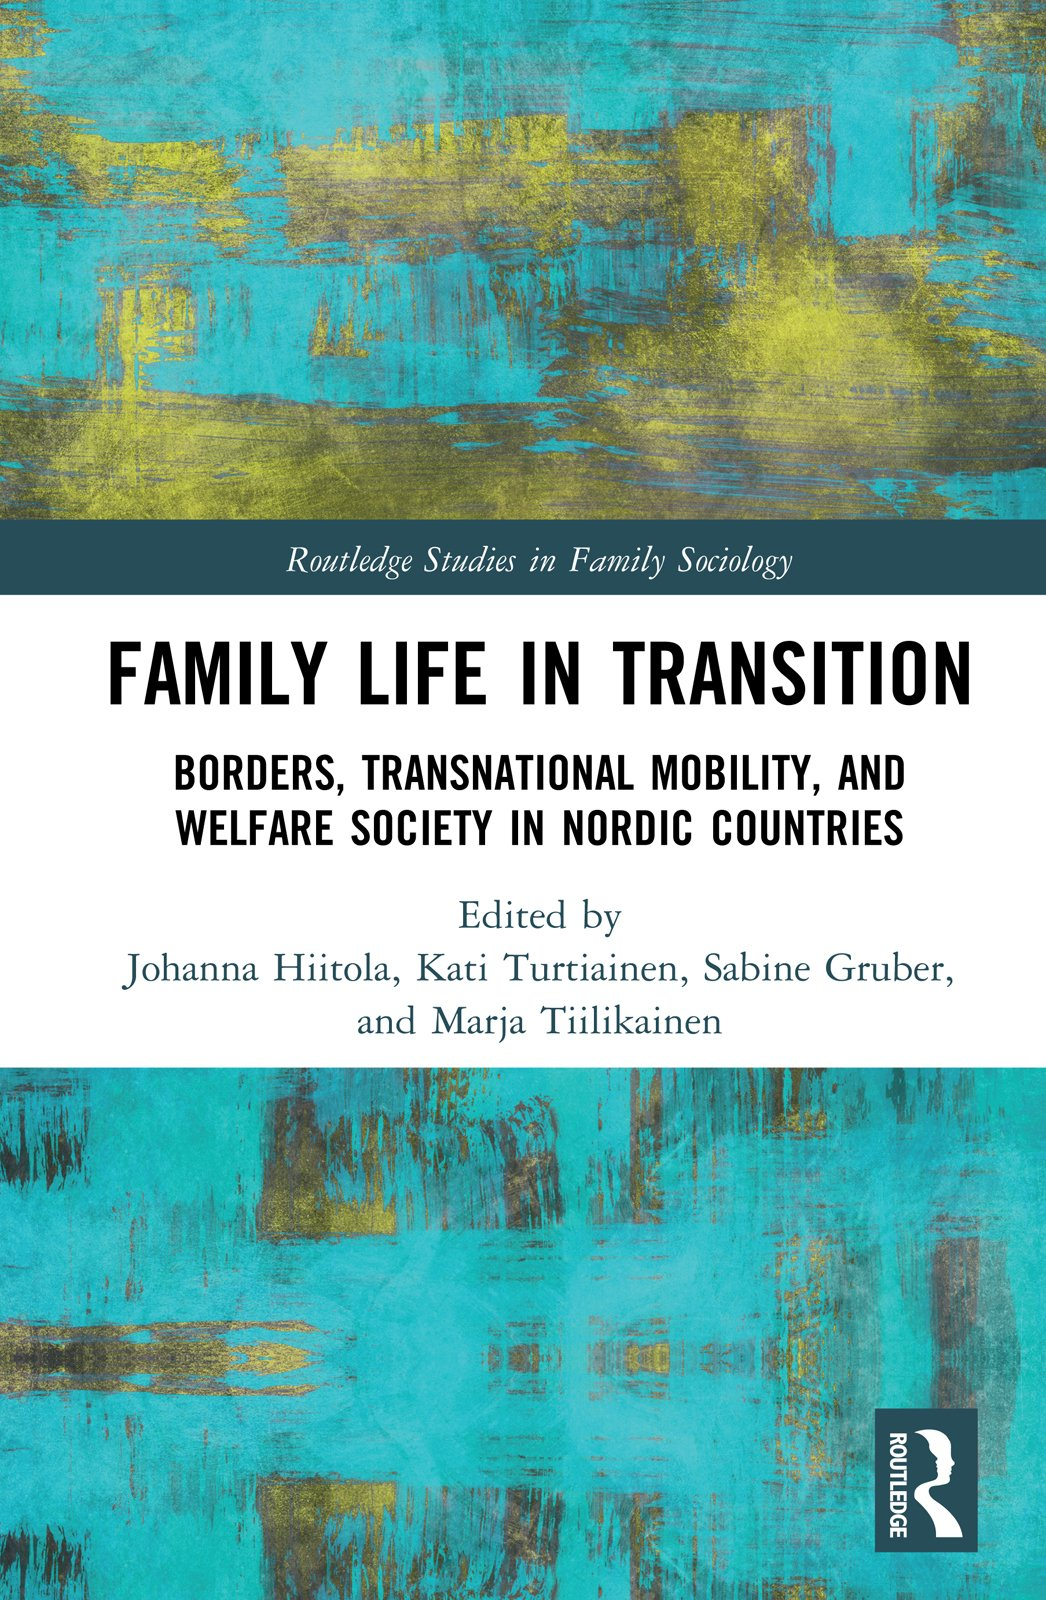 Family Life in Transition: Borders, Transnational Mobility, and Welfare Society in Nordic Countries book cover